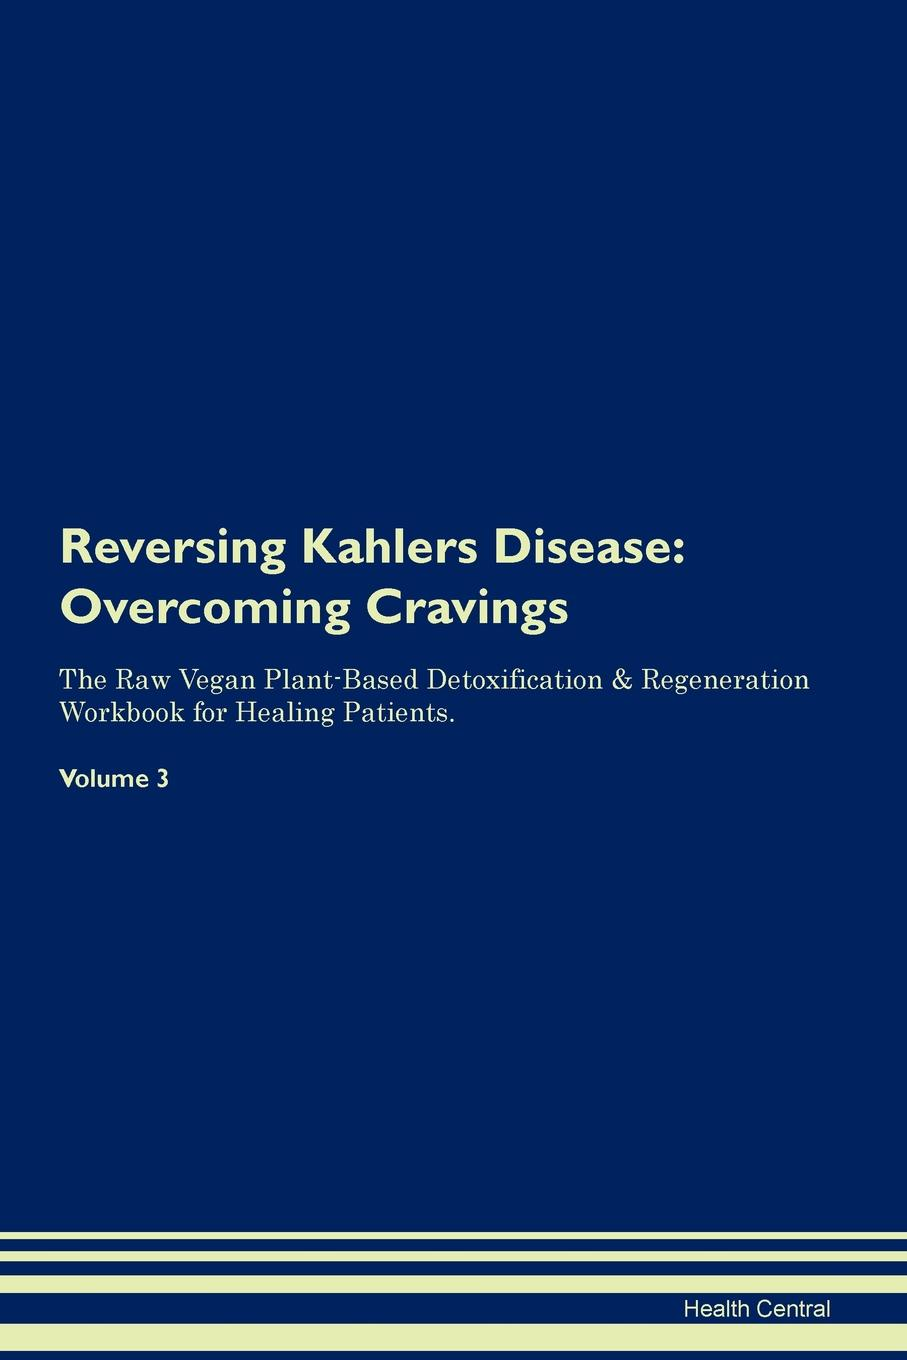 Фото - Health Central Reversing Kahlers Disease. Overcoming Cravings The Raw Vegan Plant-Based Detoxification & Regeneration Workbook for Healing Patients. Volume 3 health central reversing extramammary paget s disease overcoming cravings the raw vegan plant based detoxification regeneration workbook for healing patients volume 3